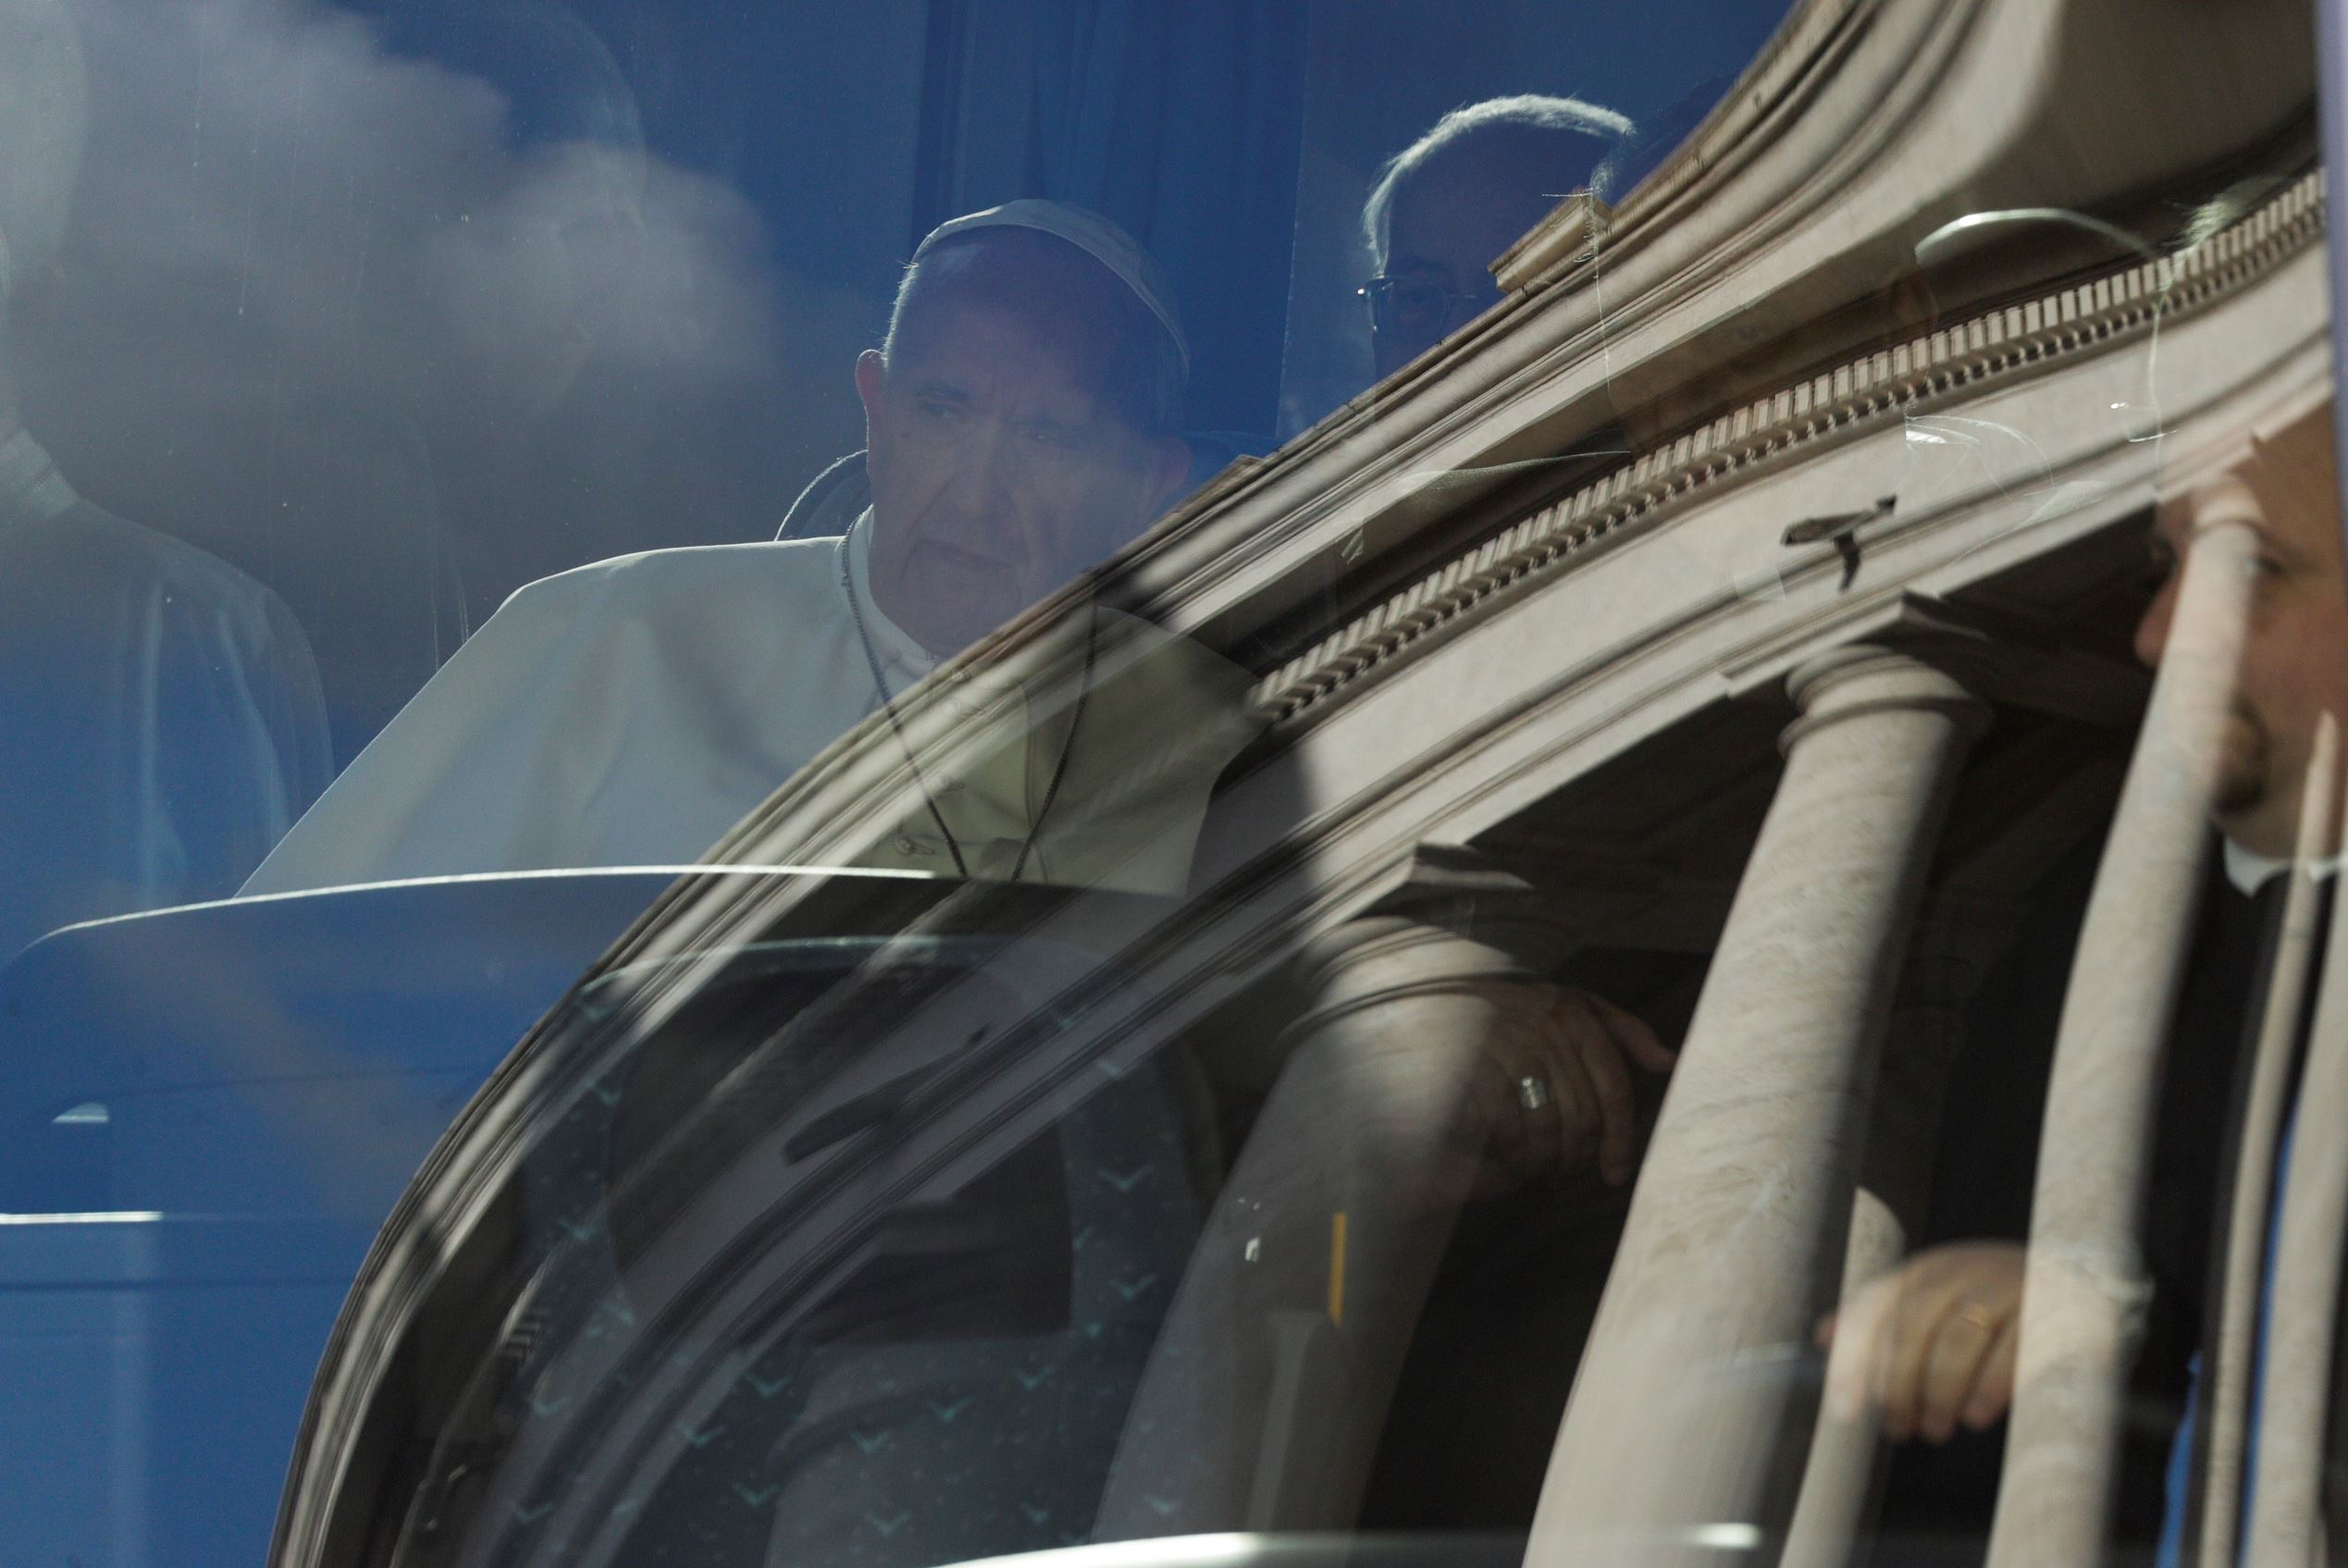 Pope Francis sits on a bus as the Bernini colonnade is reflected on the windscreen, at the Vatican, Sunday March 5, 2017.